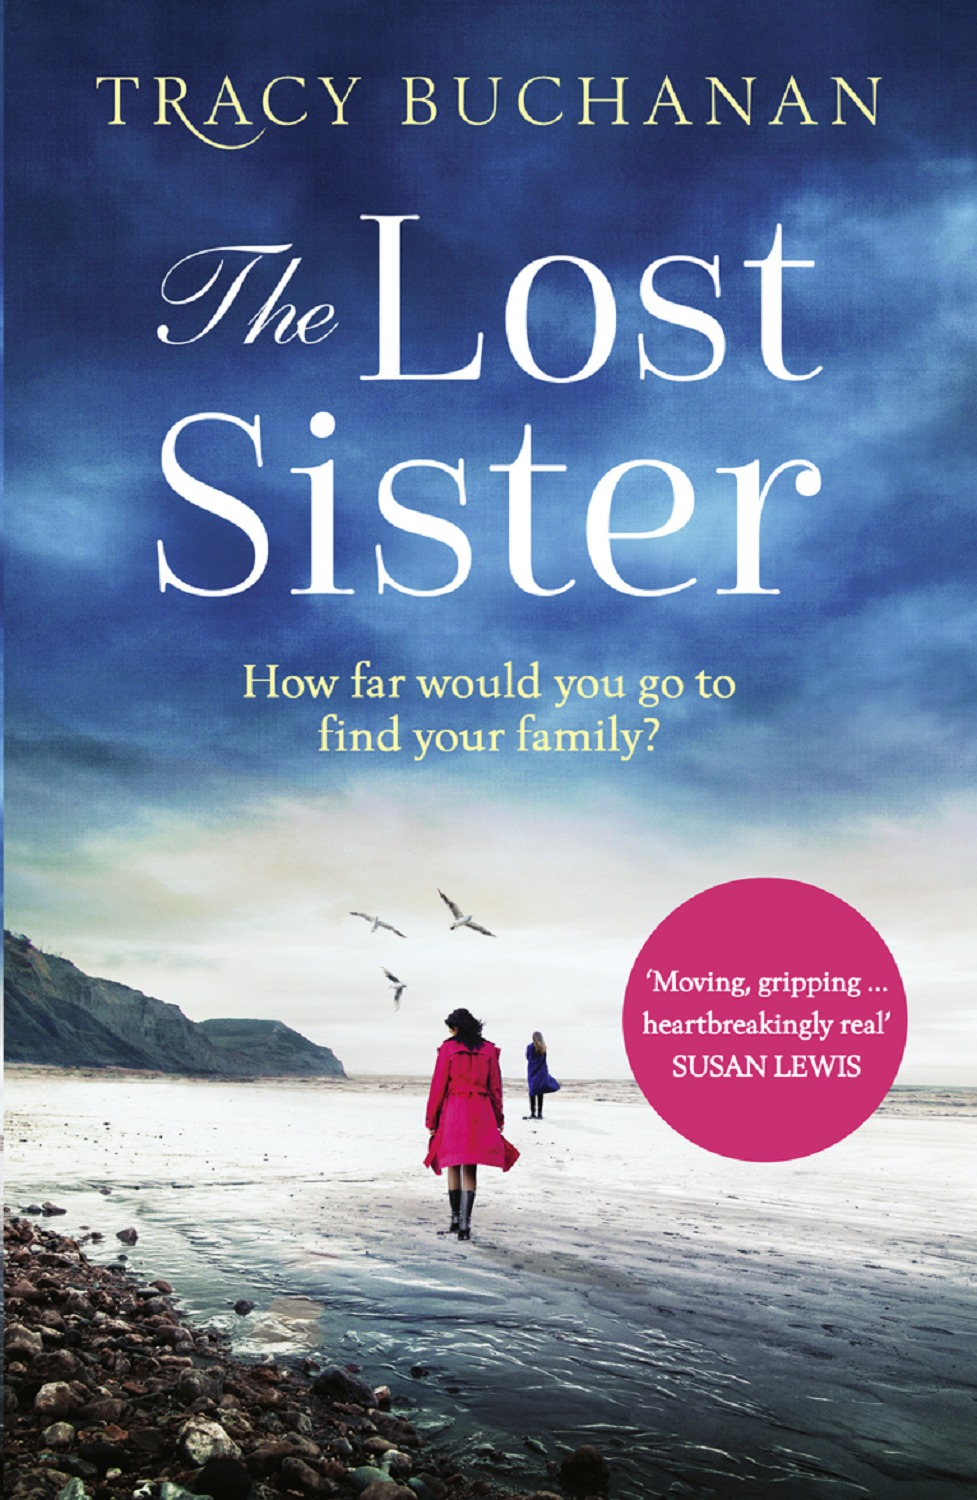 Tracy Buchanan The Lost Sister: A gripping emotional page turner with a breathtaking twist tracy buchanan the lost sister a gripping emotional page turner with a breathtaking twist